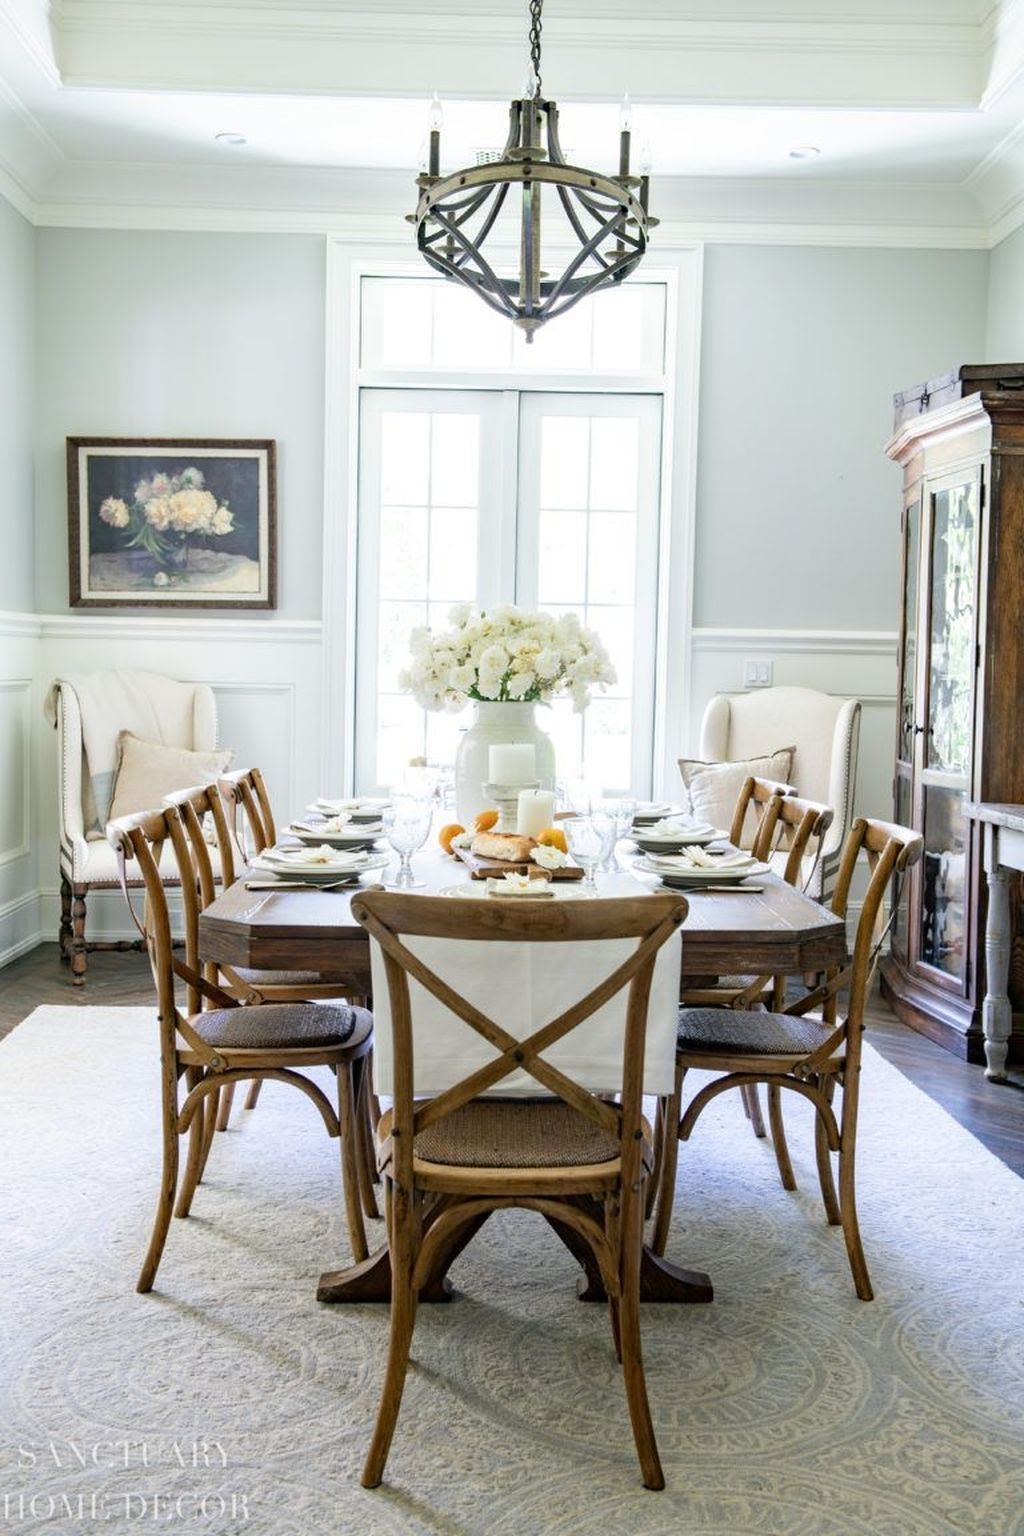 dining room ideas small, dining room ideas 11, dining room